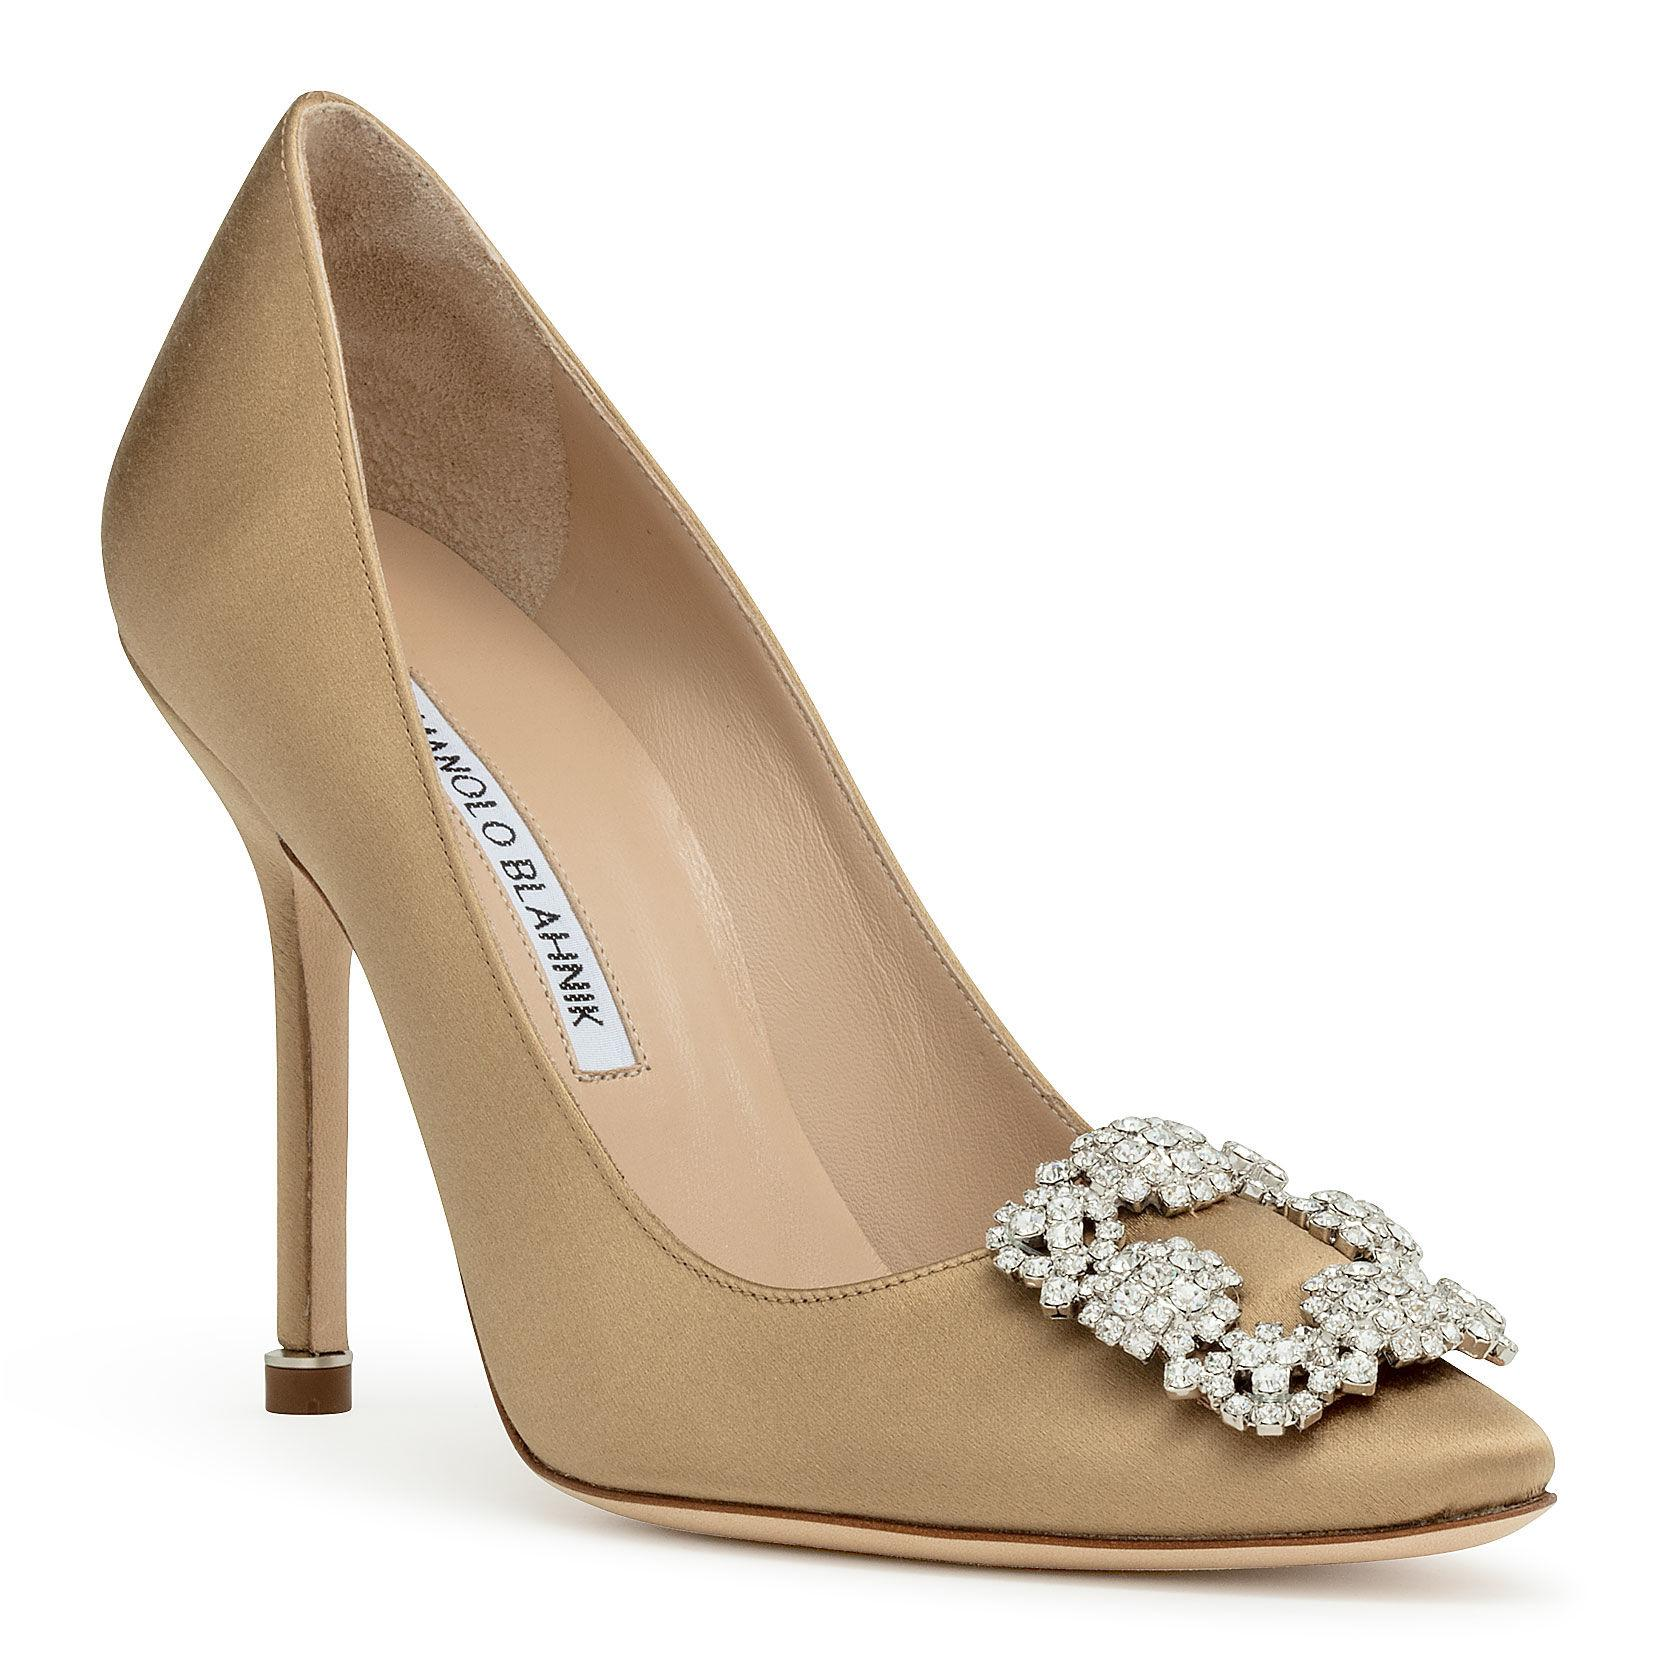 4578ecedfc4e6 Lyst - Manolo Blahnik Hangisi 105 Golden Brown Satin Pumps